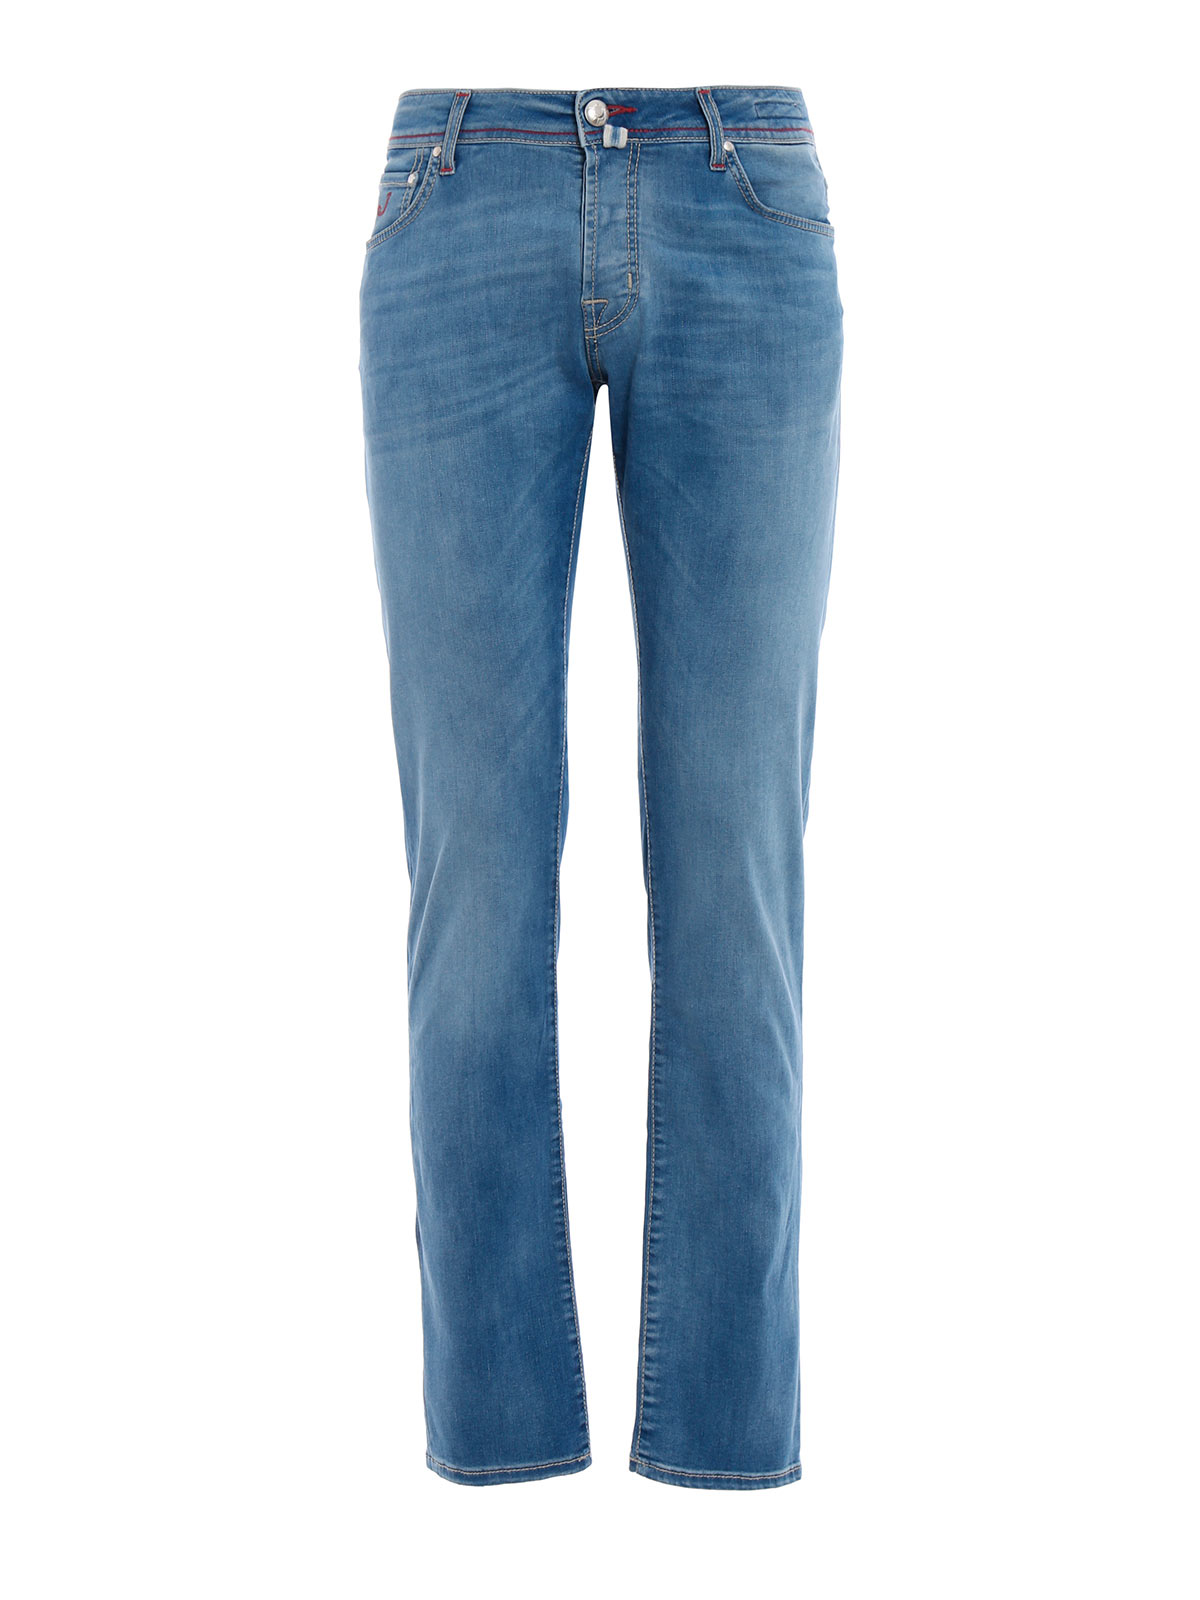 Picture of JACOB COHEN | Men's Style 662 Jeans